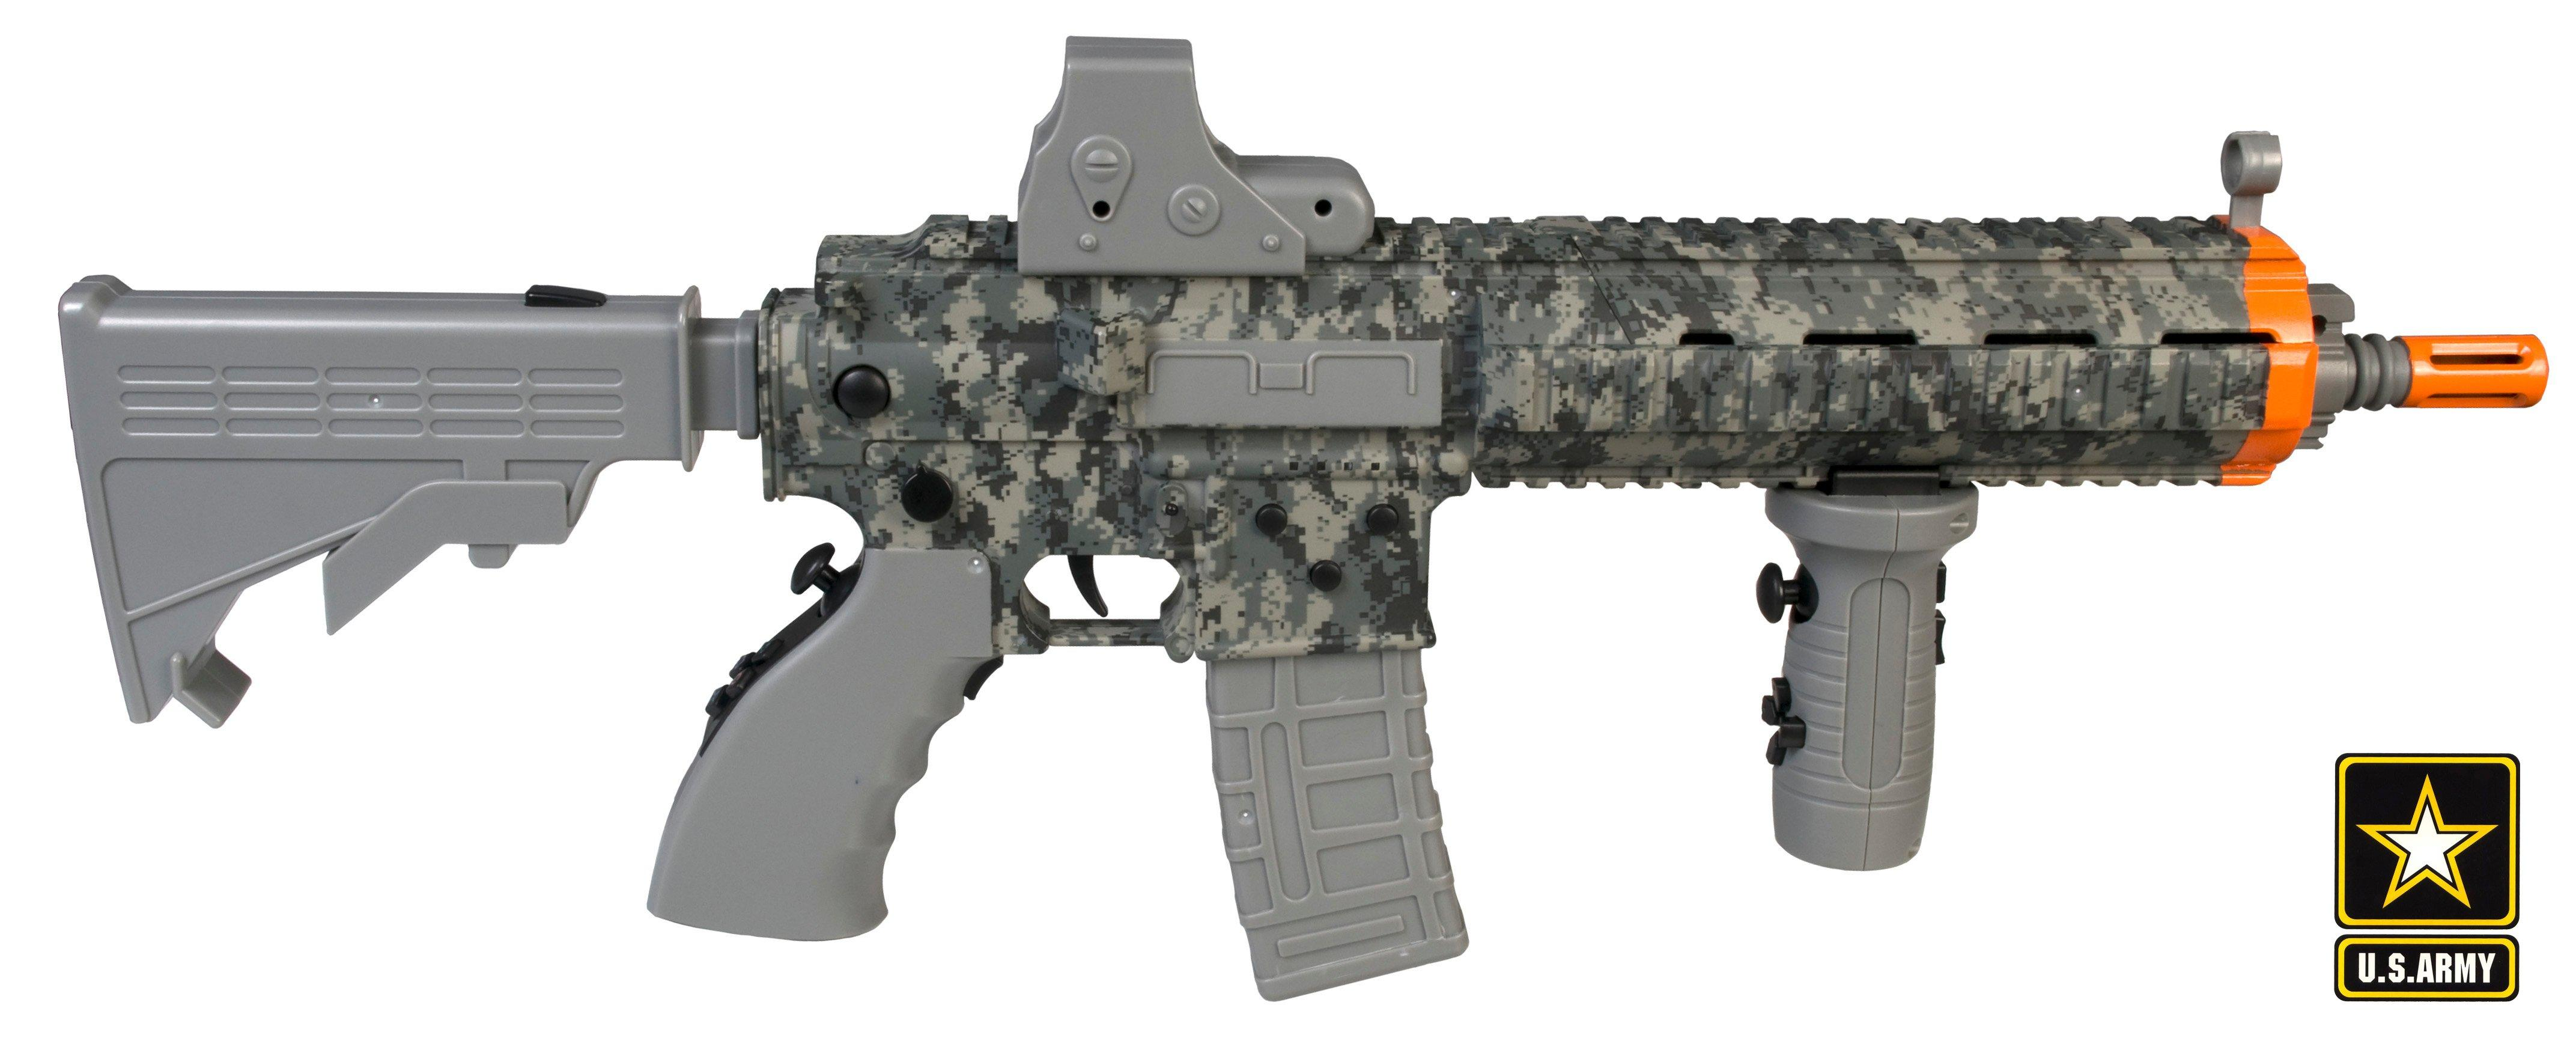 U S  Army Elite Force Assault Rifle For PlayStation 3 & Move - Only at  GameStop | PlayStation 3 | GameStop